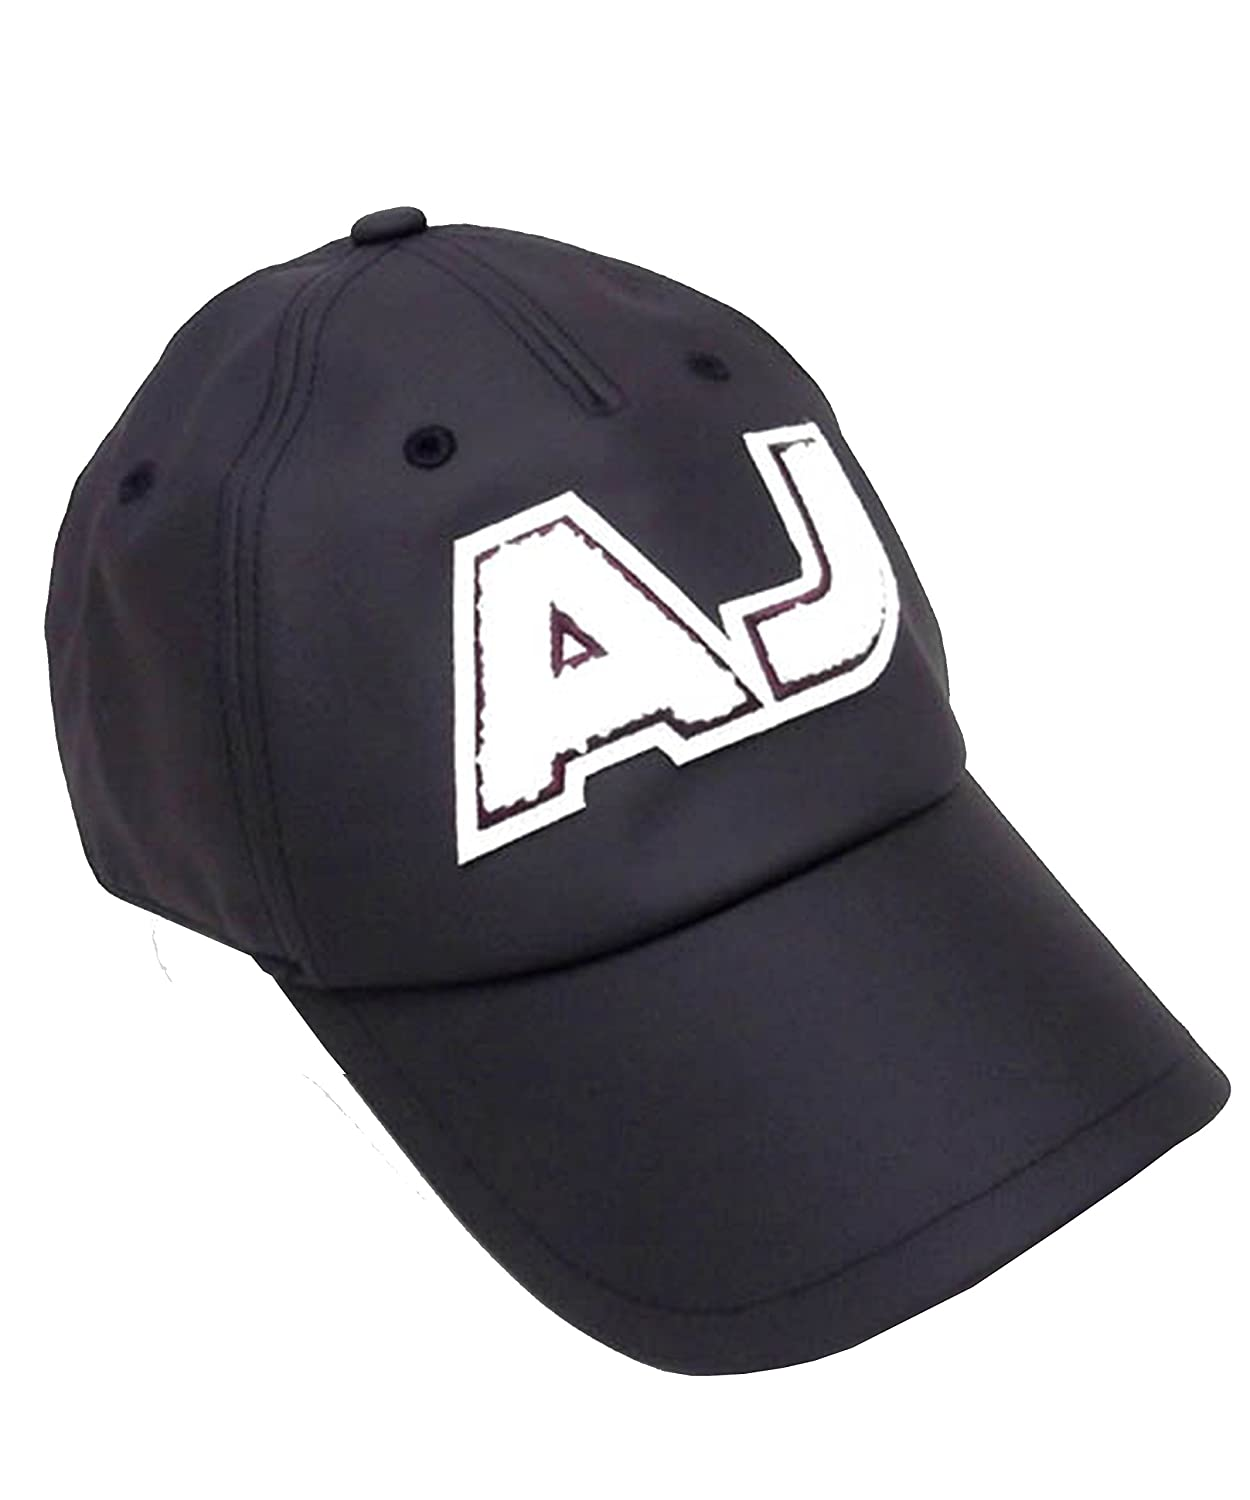 a352c6f8 Armani Jeans Mens Baseball Cap In Black- One Size: Amazon.co.uk: Clothing